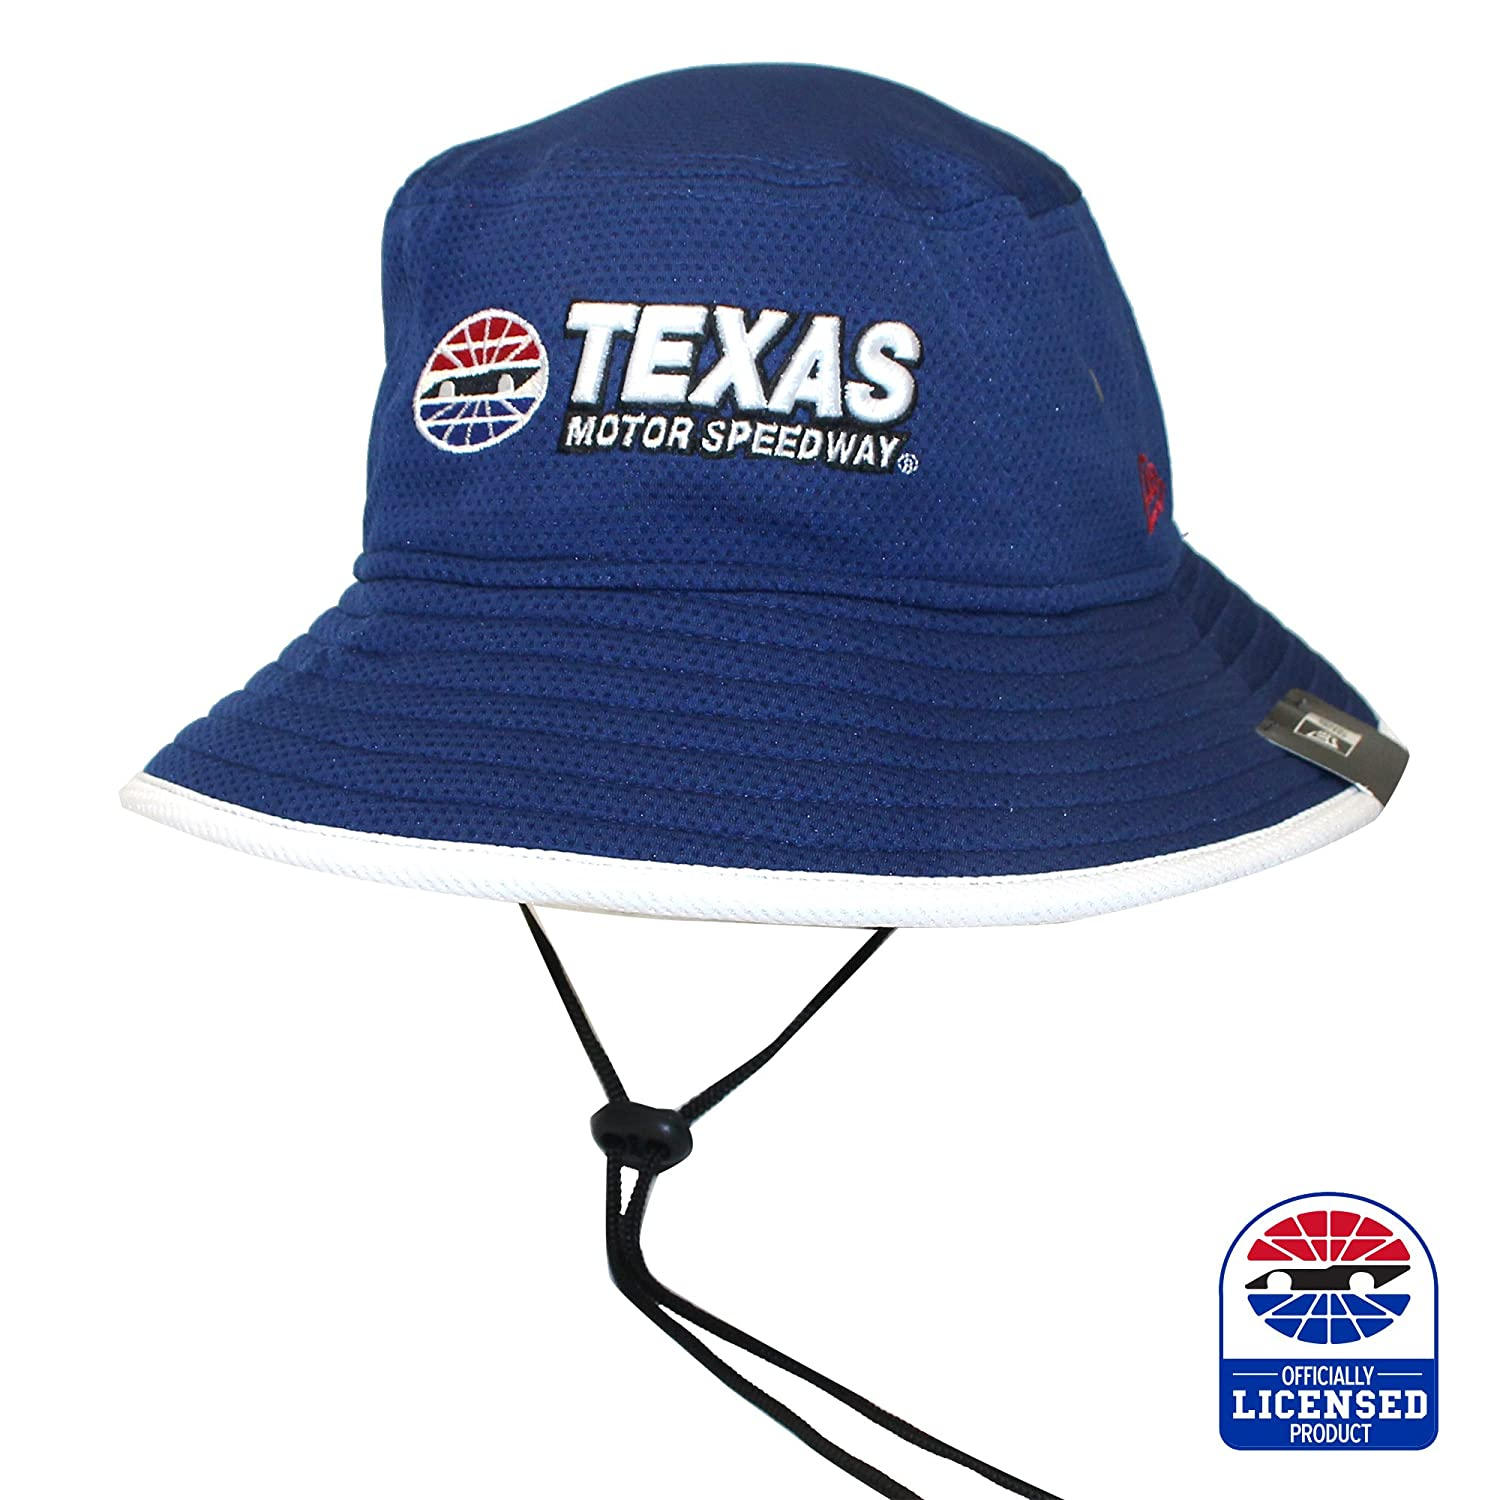 Amazon.com   Texas Motor Speedway Bucket Hat Blue   Sports   Outdoors c476a030cba